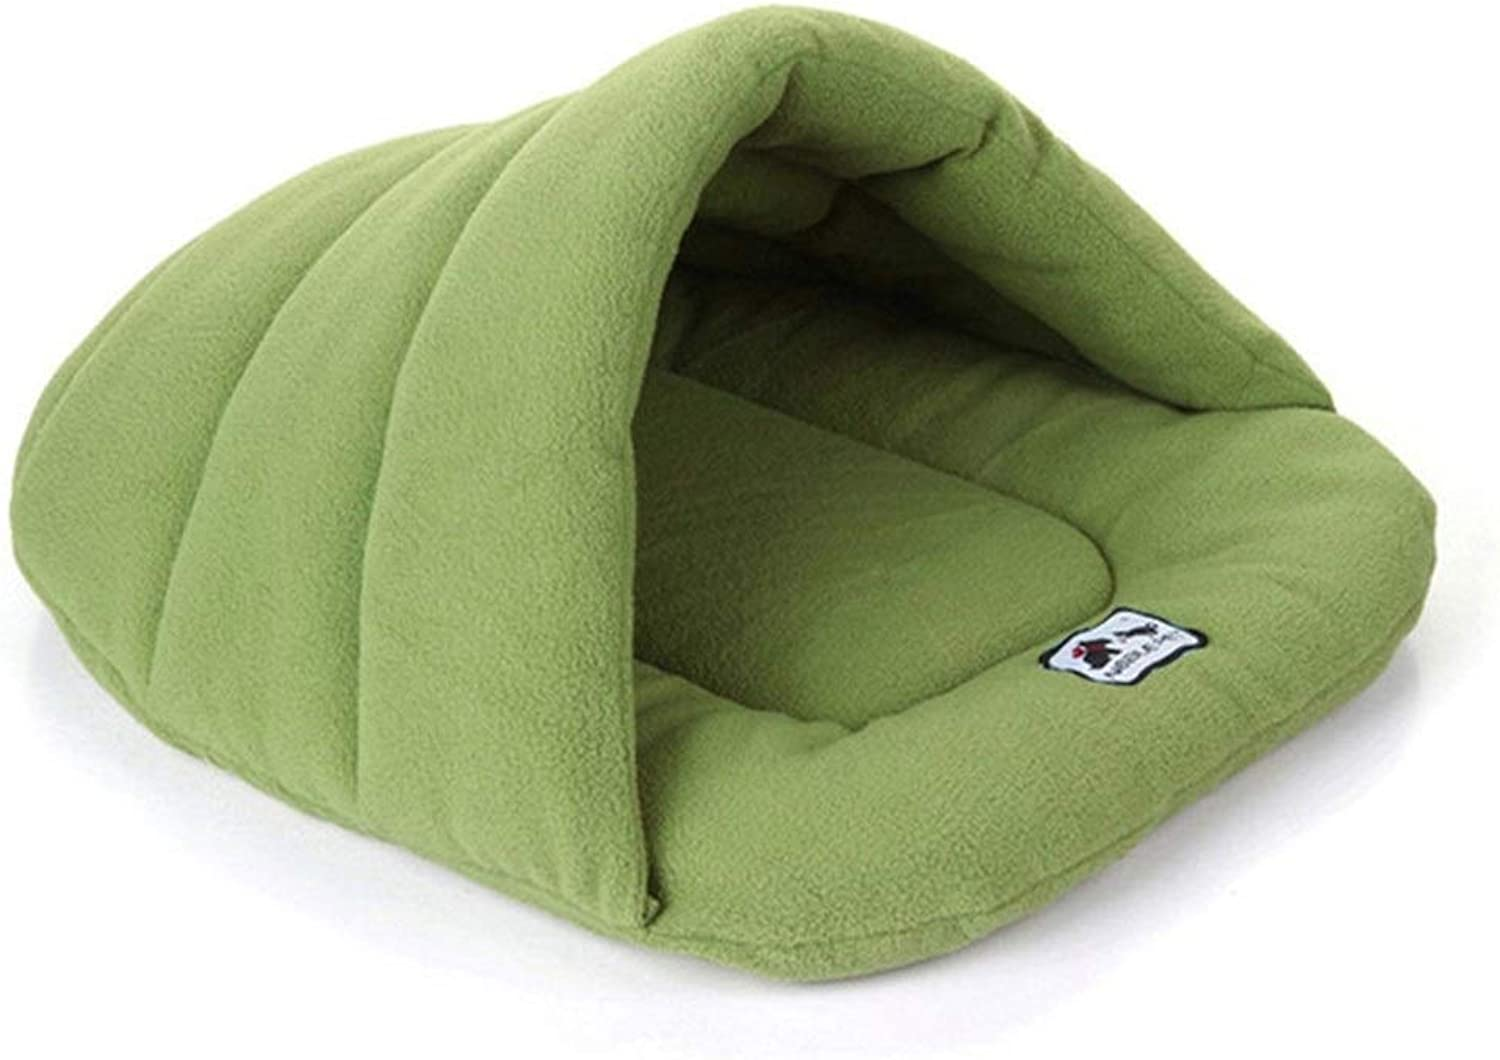 BeTTi Warm Sleeping Fleece Dog Bed 6 colors Soft Material Keep Warming Dog nest Pet Cat Small Dog Puppy Sleeping Bag (color   Green, Size   XS)